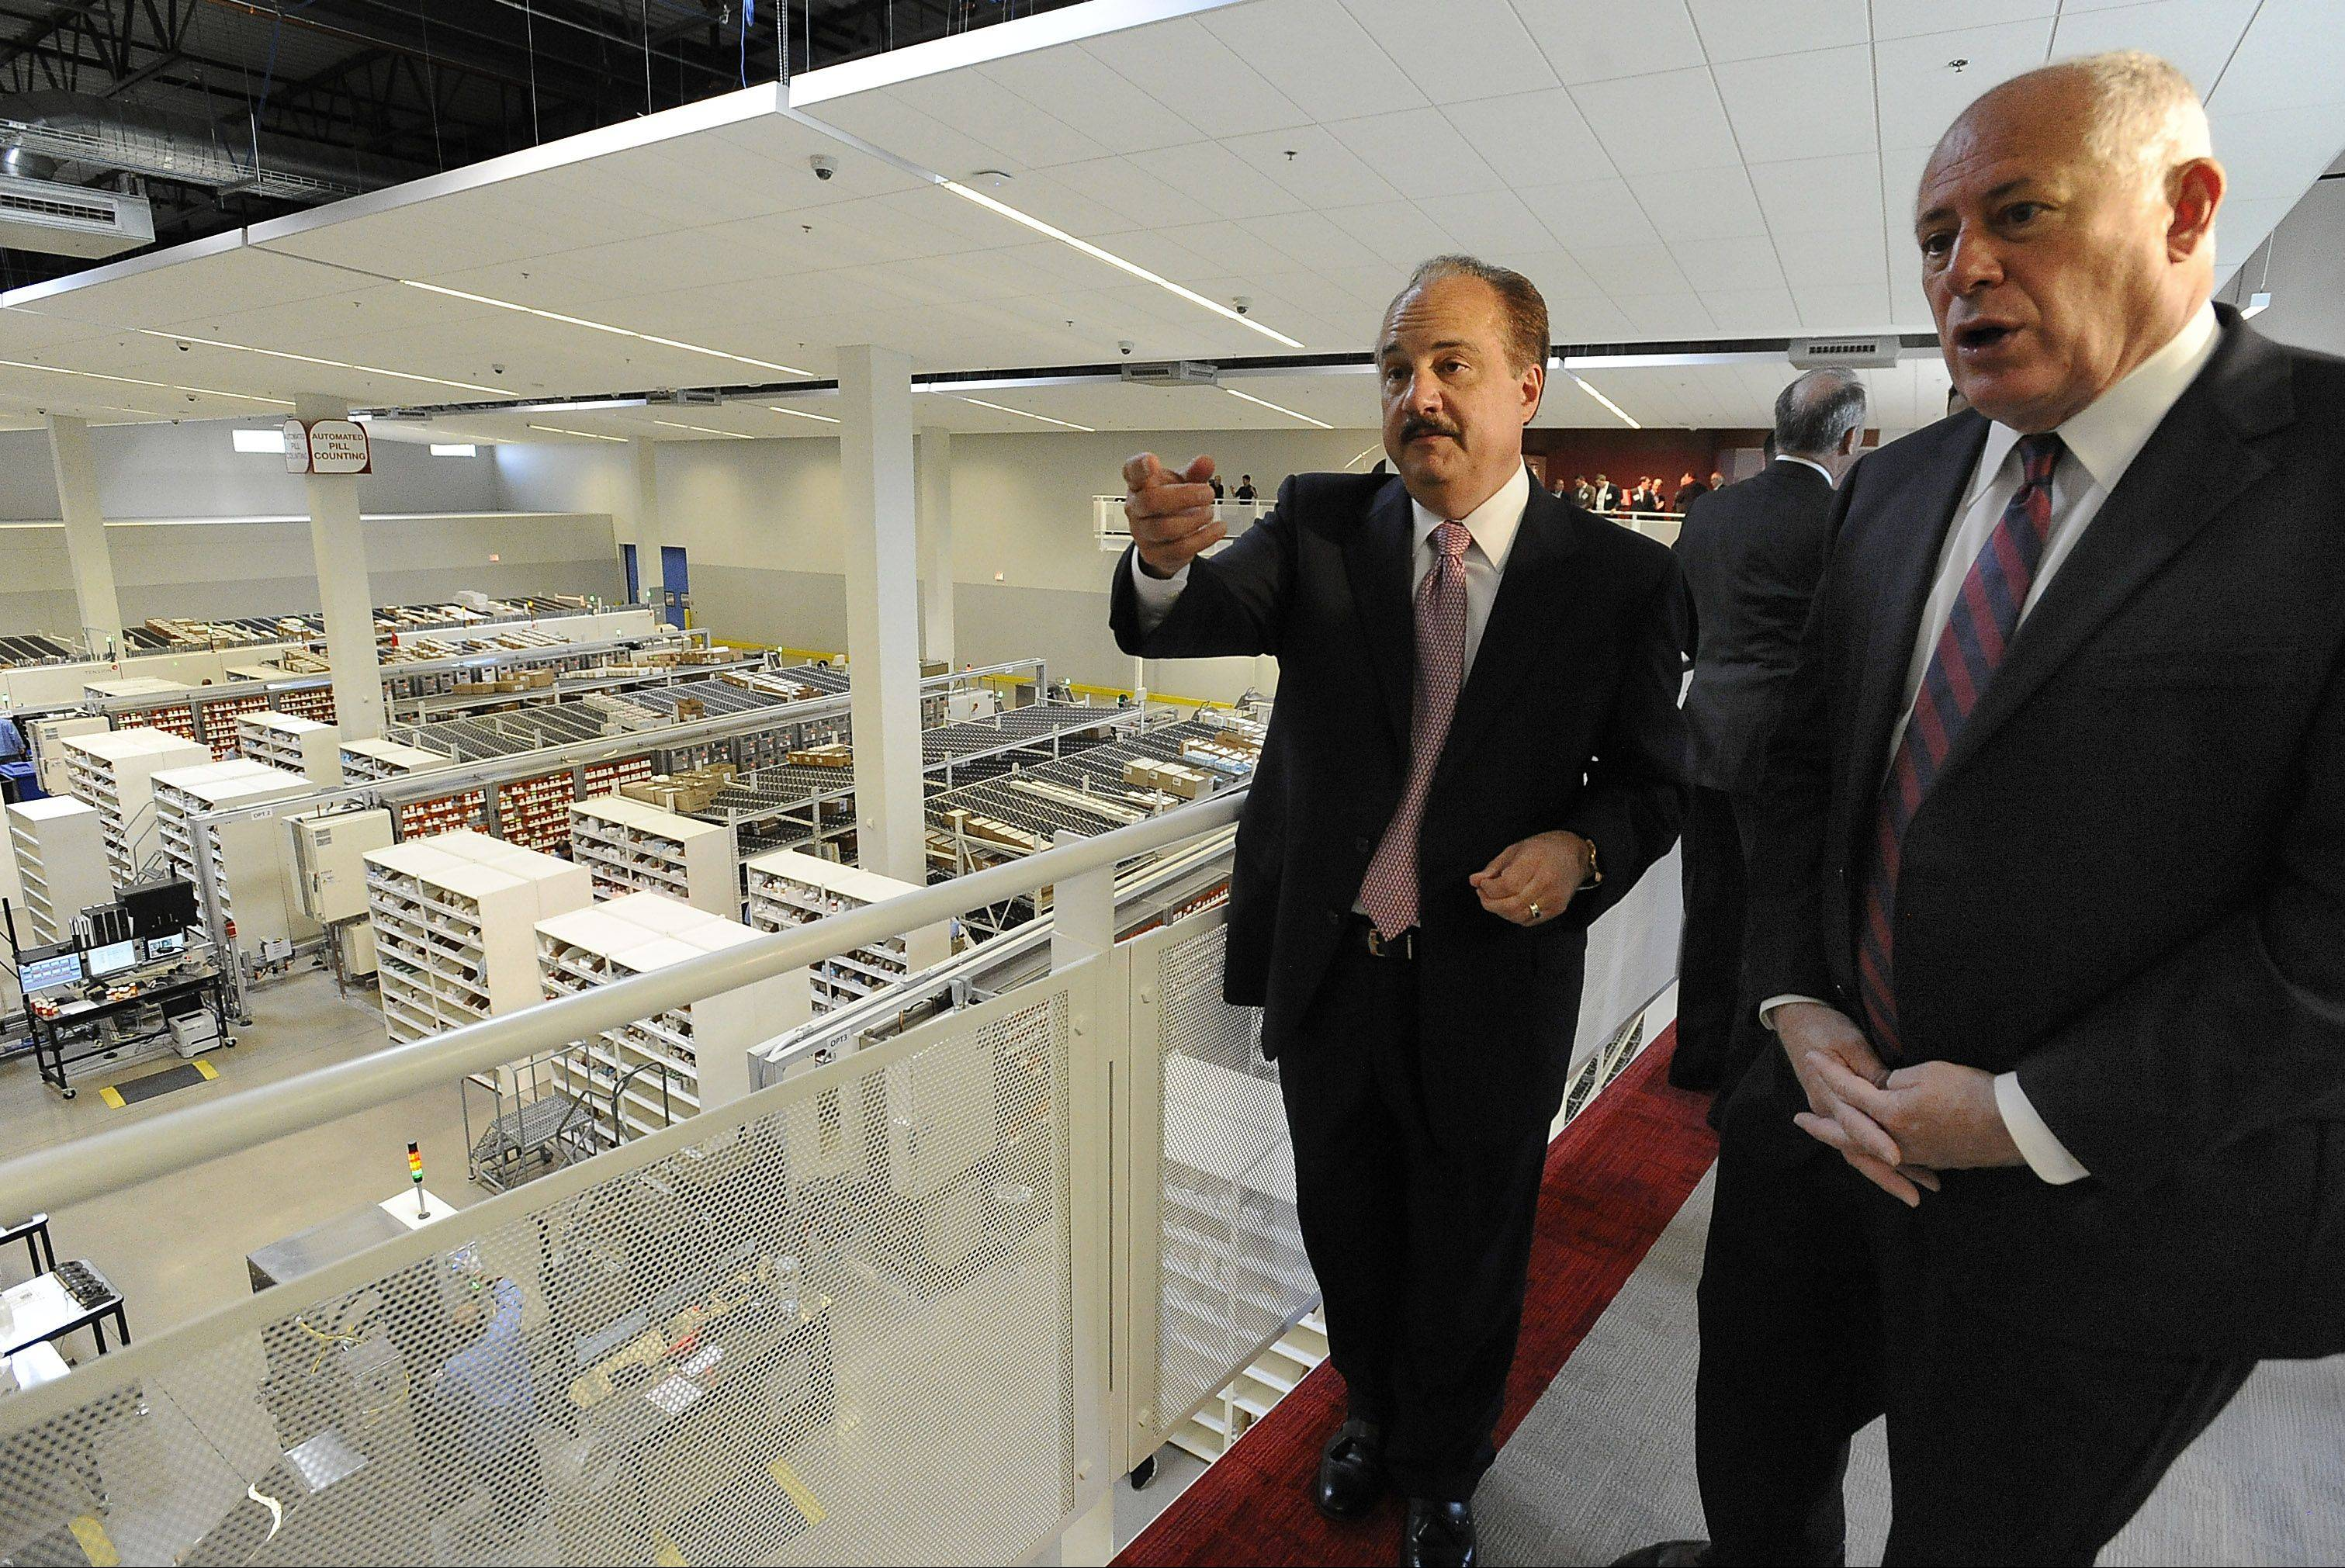 Gov. Pat Quinn, right, and Larry Merlo, CEO and president of CVS Caremark, toured the new CVS Caremark Mail Service Pharmacy and Customer Center in Mount Prospect on Tuesday.